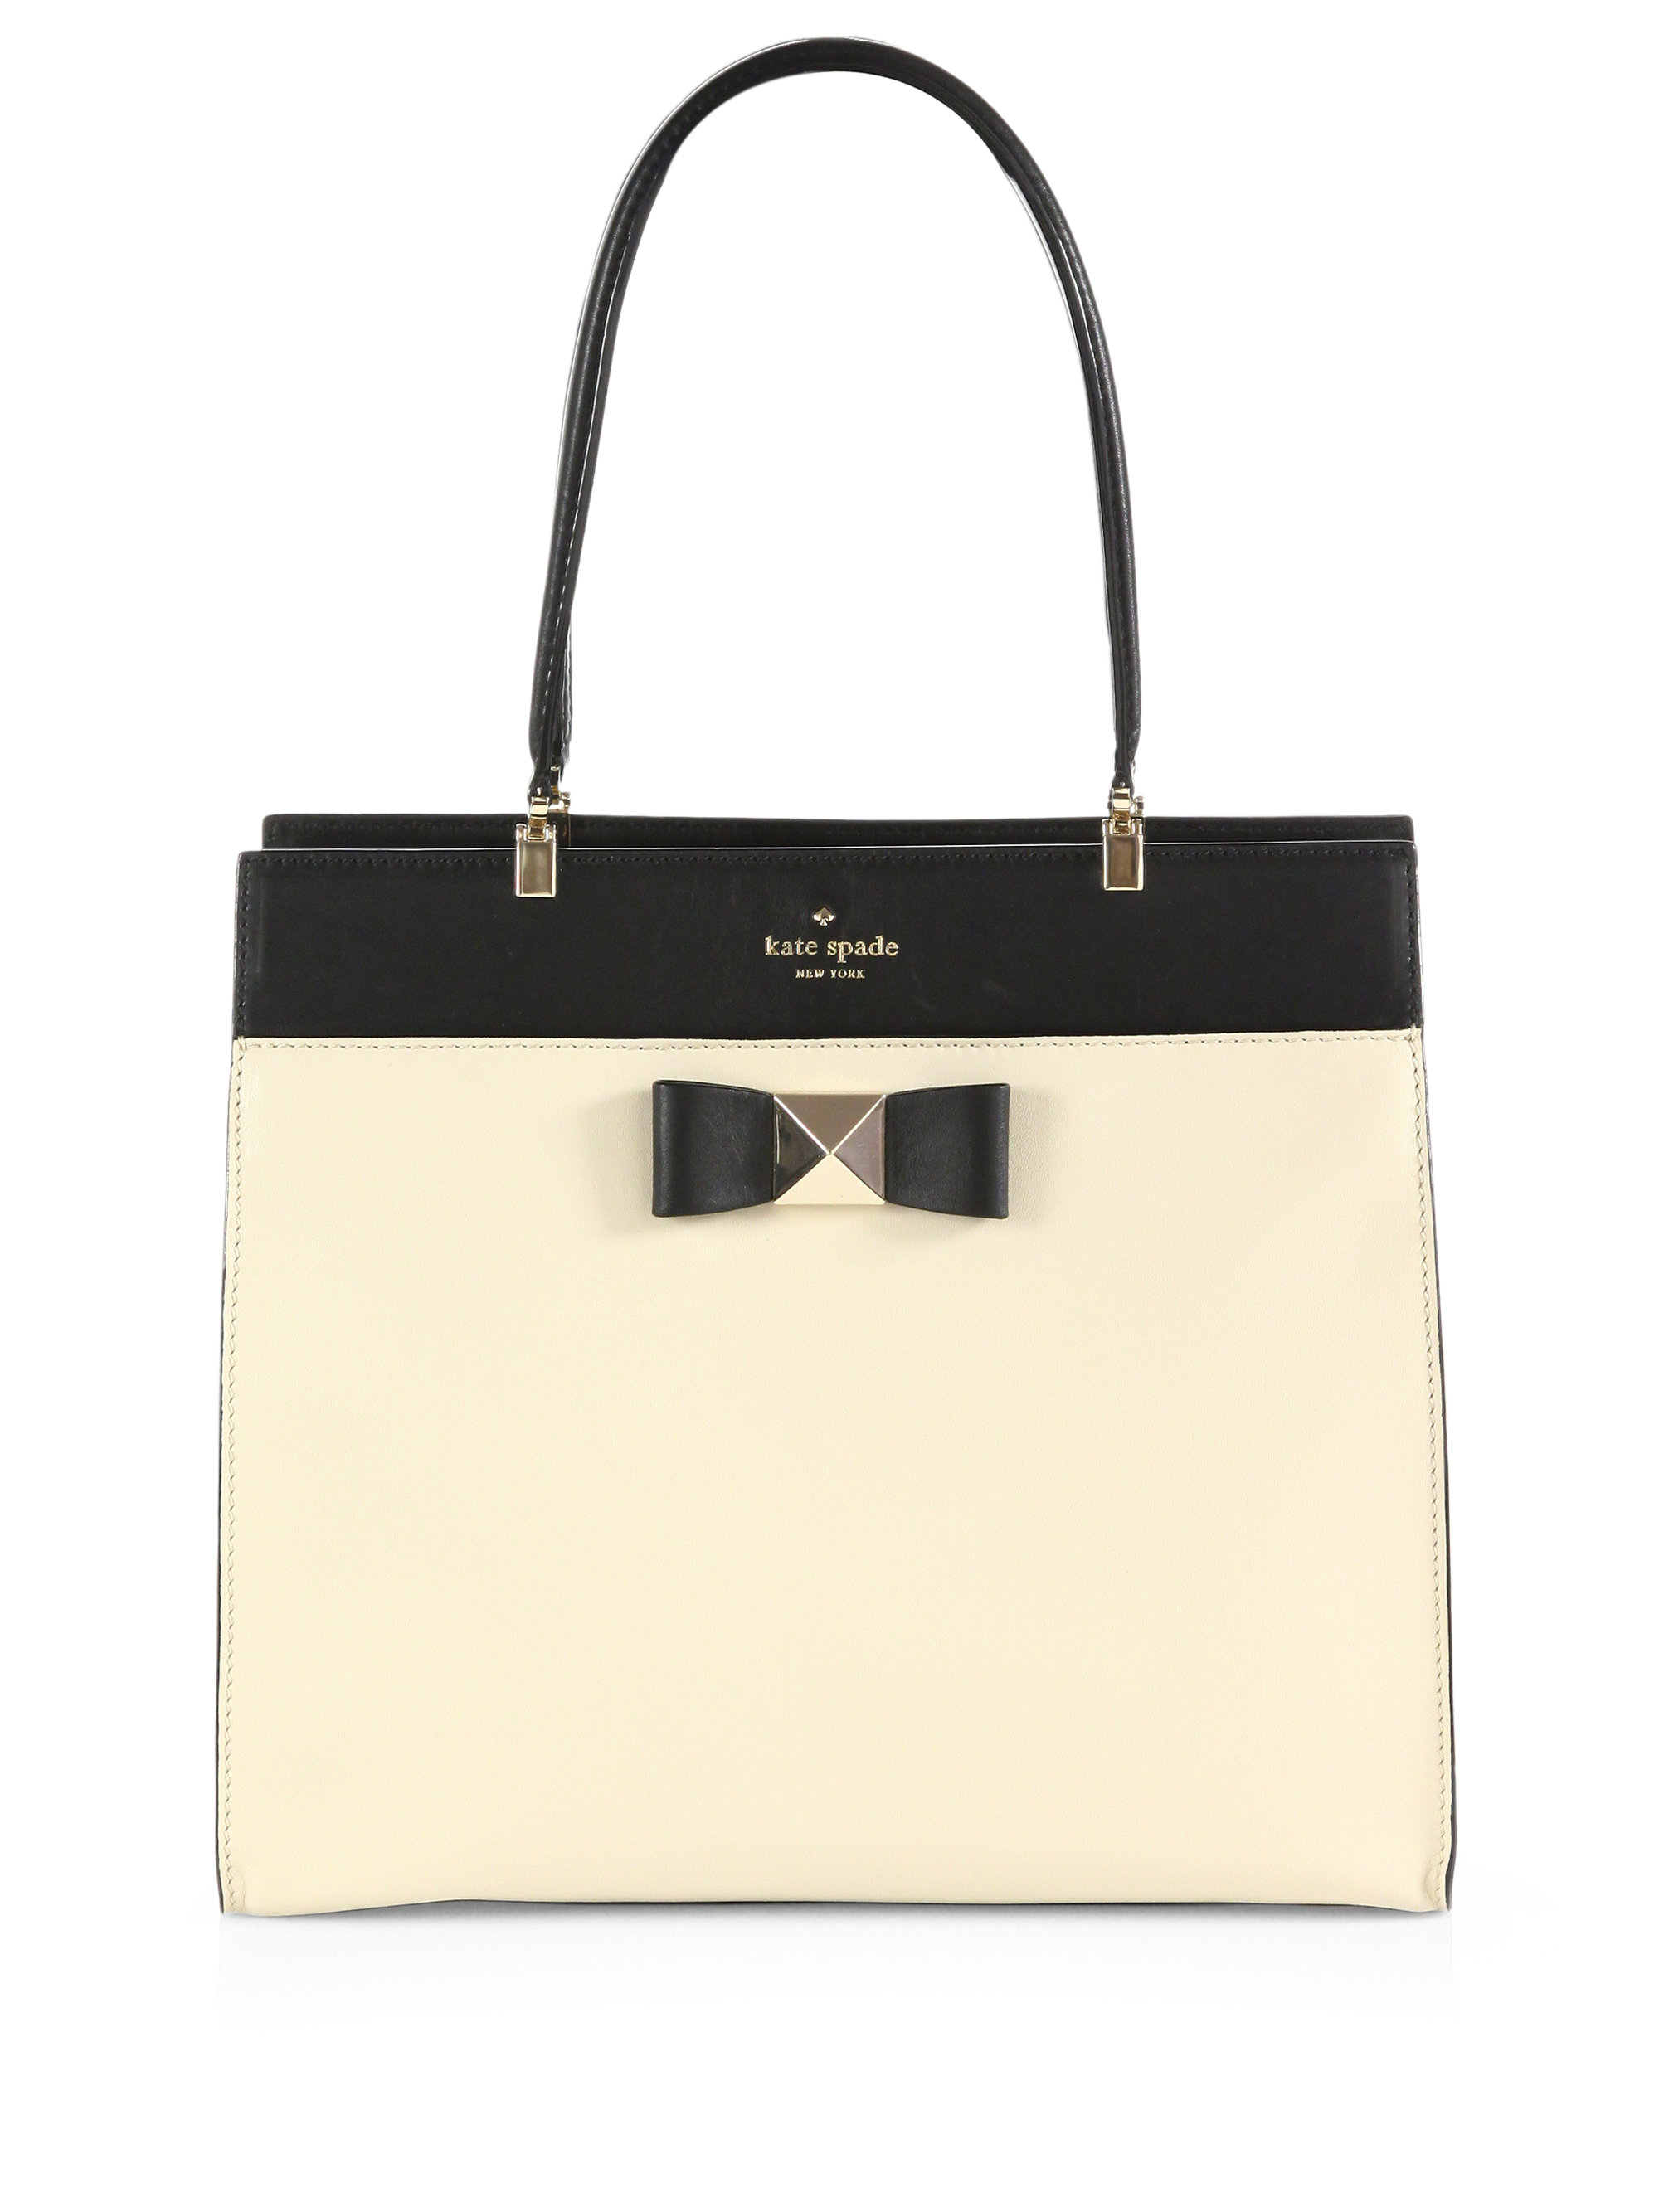 Lyst - Kate Spade Bow Terrance Fulton Colour Block Top Handle Bag in ... a20c7e0aa4